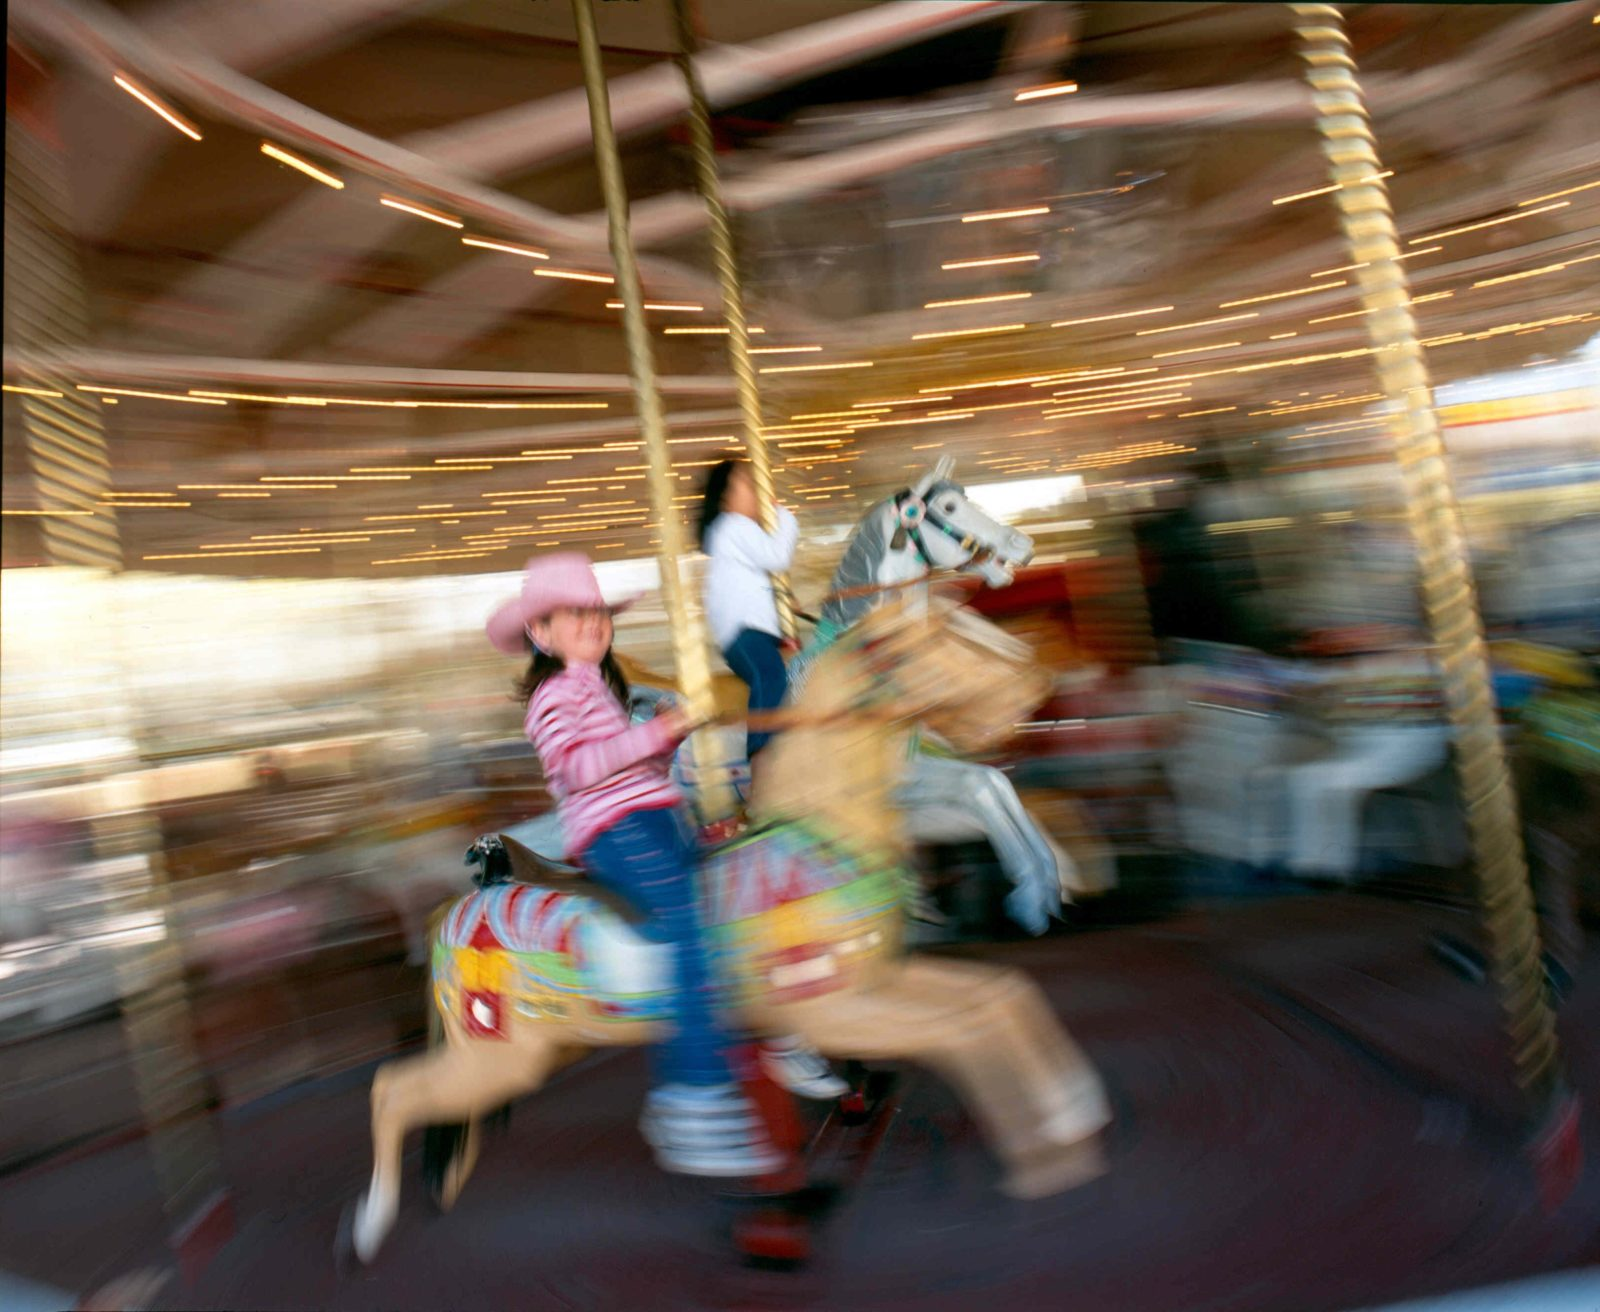 Riding the merry-go-round